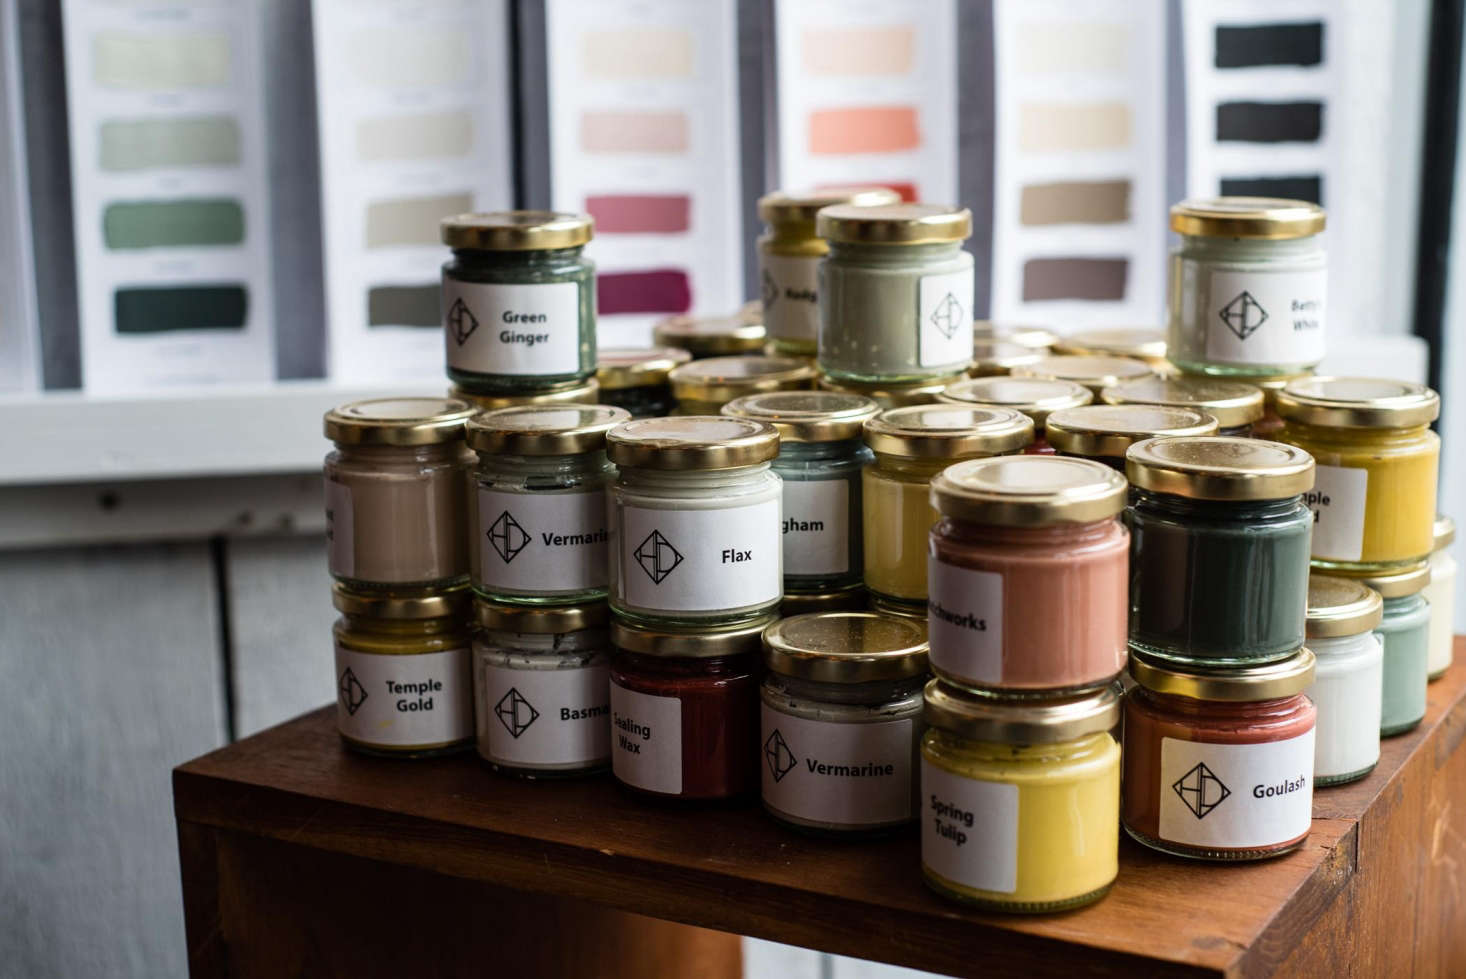 The paints continue to be hand mixed to order by a London-based color artisan.